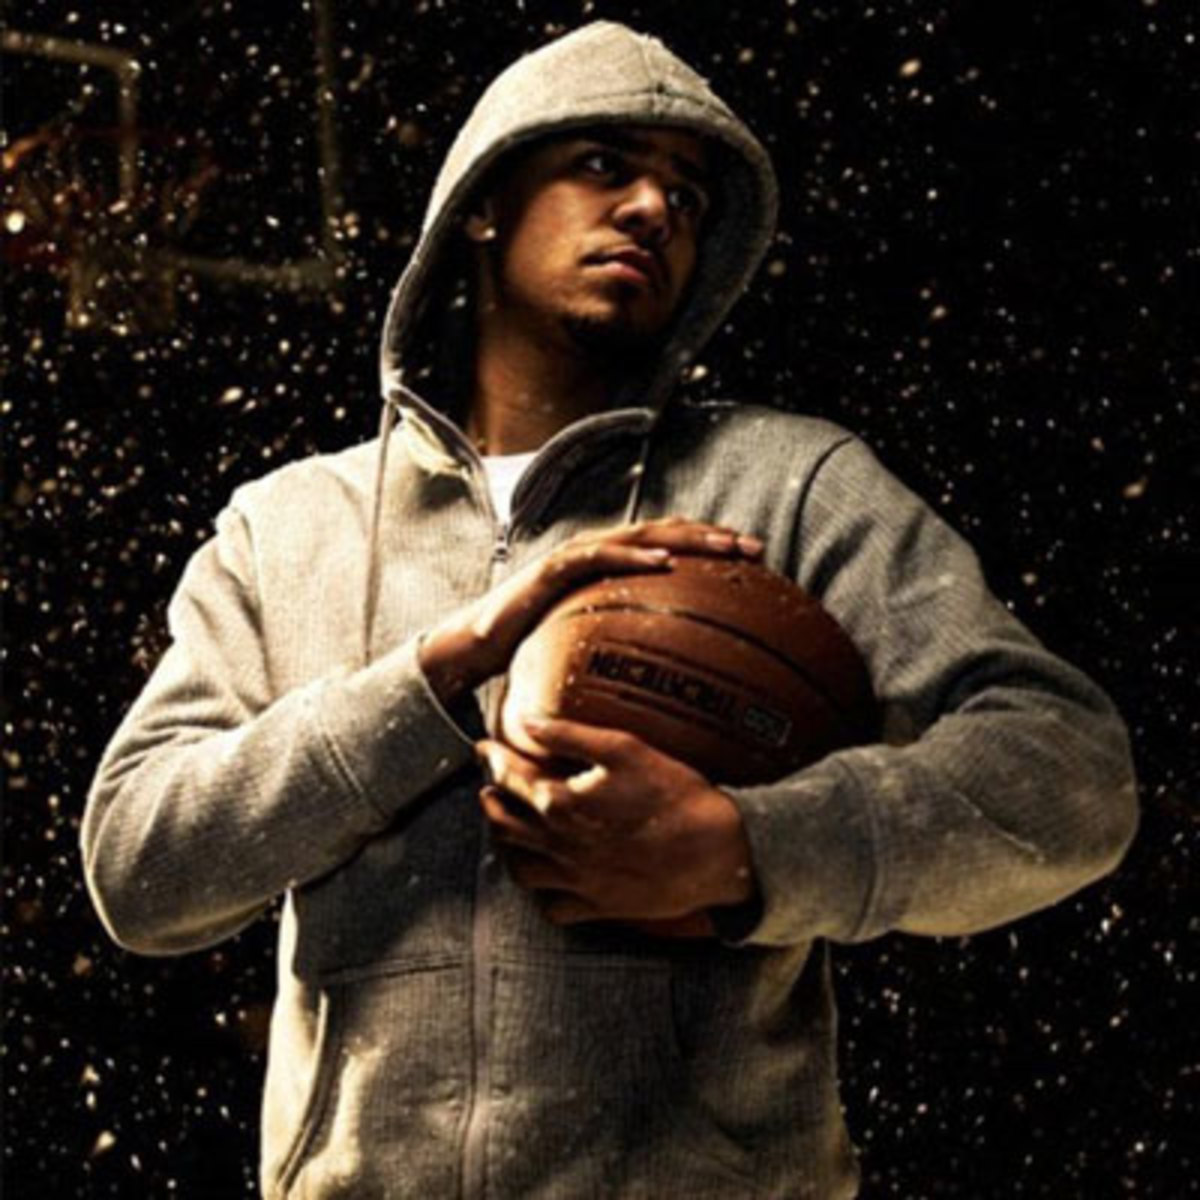 j-cole-nba-hip-hop-changed-game.jpg